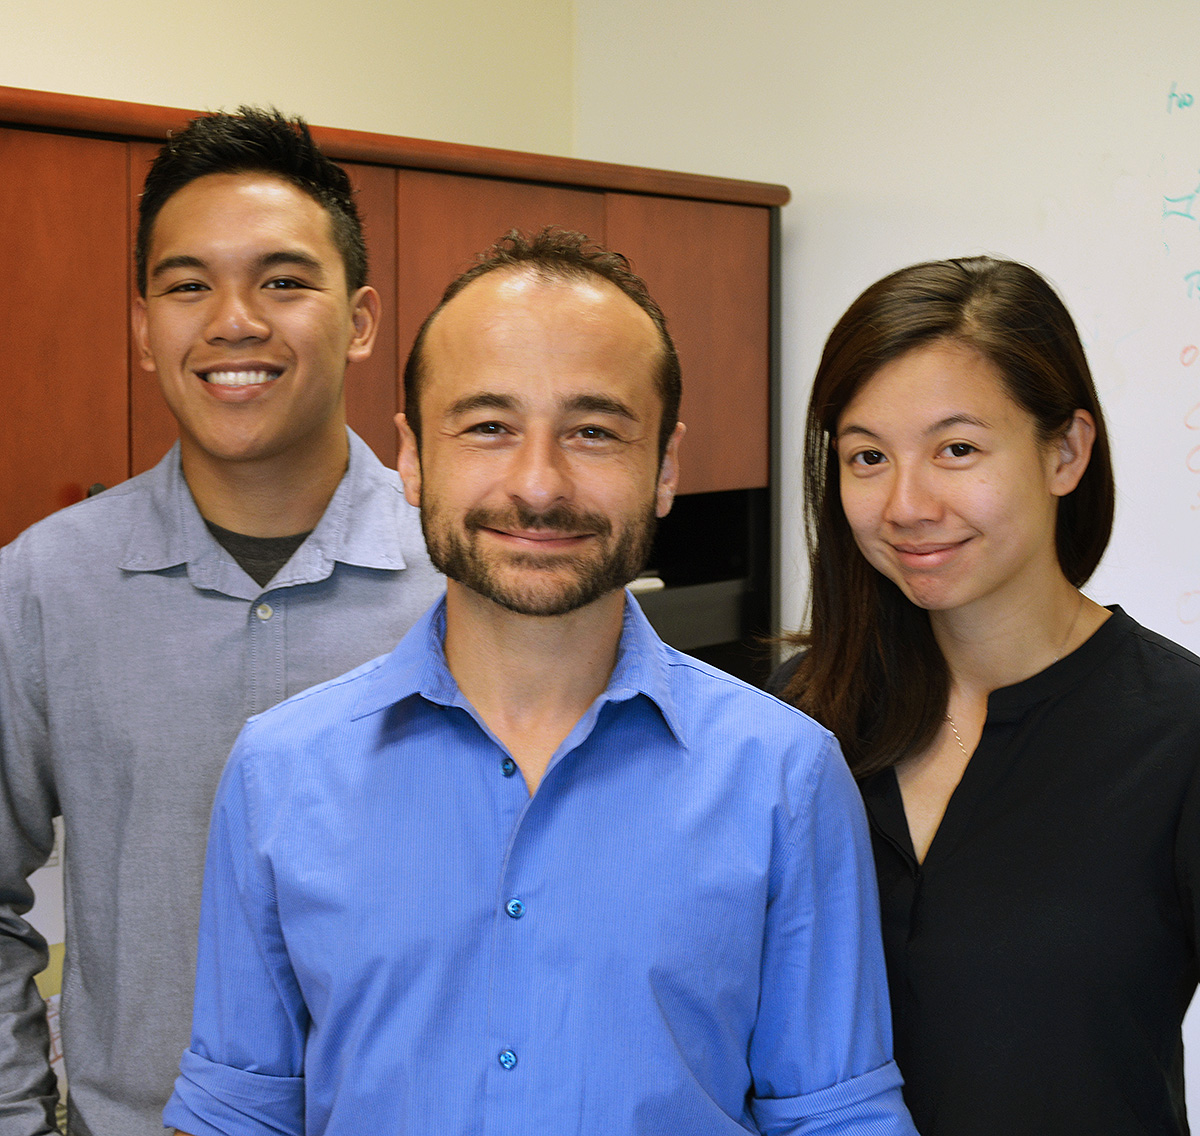 Authors of the new Scripps Research Institute study include (left to right) Justin Abadejos, Oktay Kirak and Manching Ku.